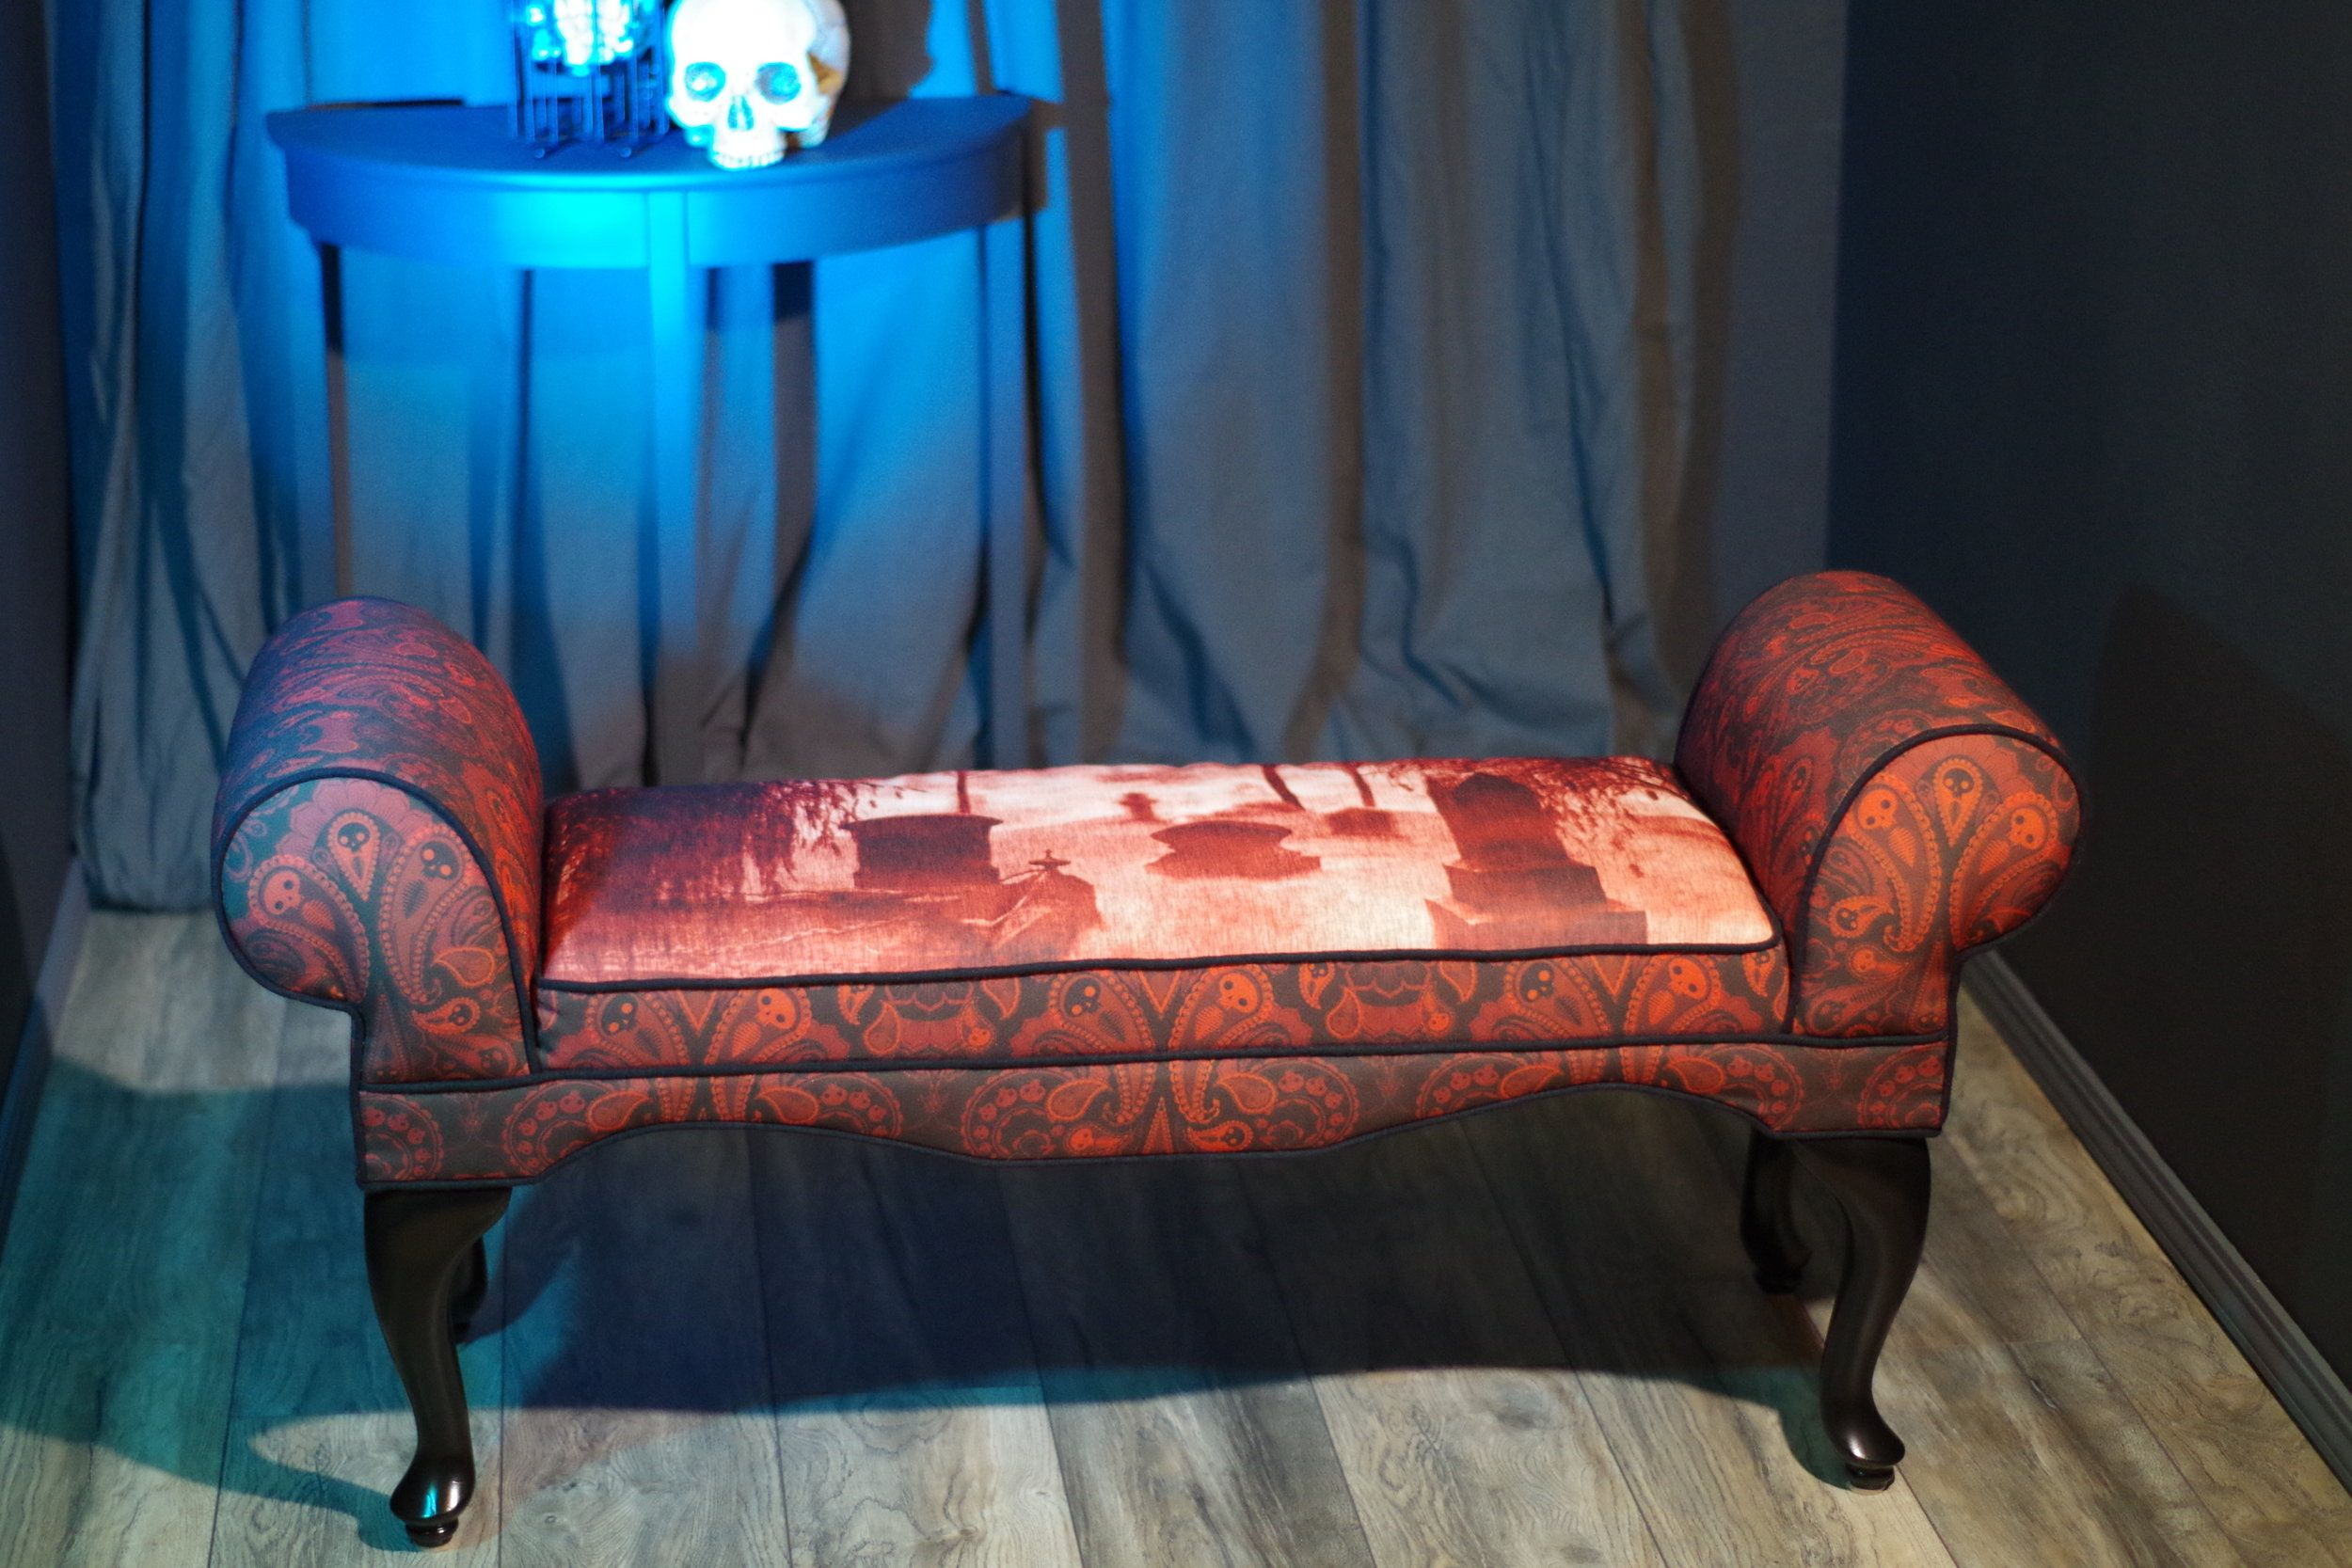 Cemetery Bench from $305.00 Classic style meets dark whimsy in this victorian-style piece.  The top of the seat features a scene from the Kawaiahao church cemetery in Hawaii, while a playful 'Ghost Paisley' pattern compliments the rest of the upholstery.   Finished with black, linen-blend welt trim. Color(s): Red and black  Material(s): Upholstery: 100% polyester Eco Canvas, made from 45% recycled material.